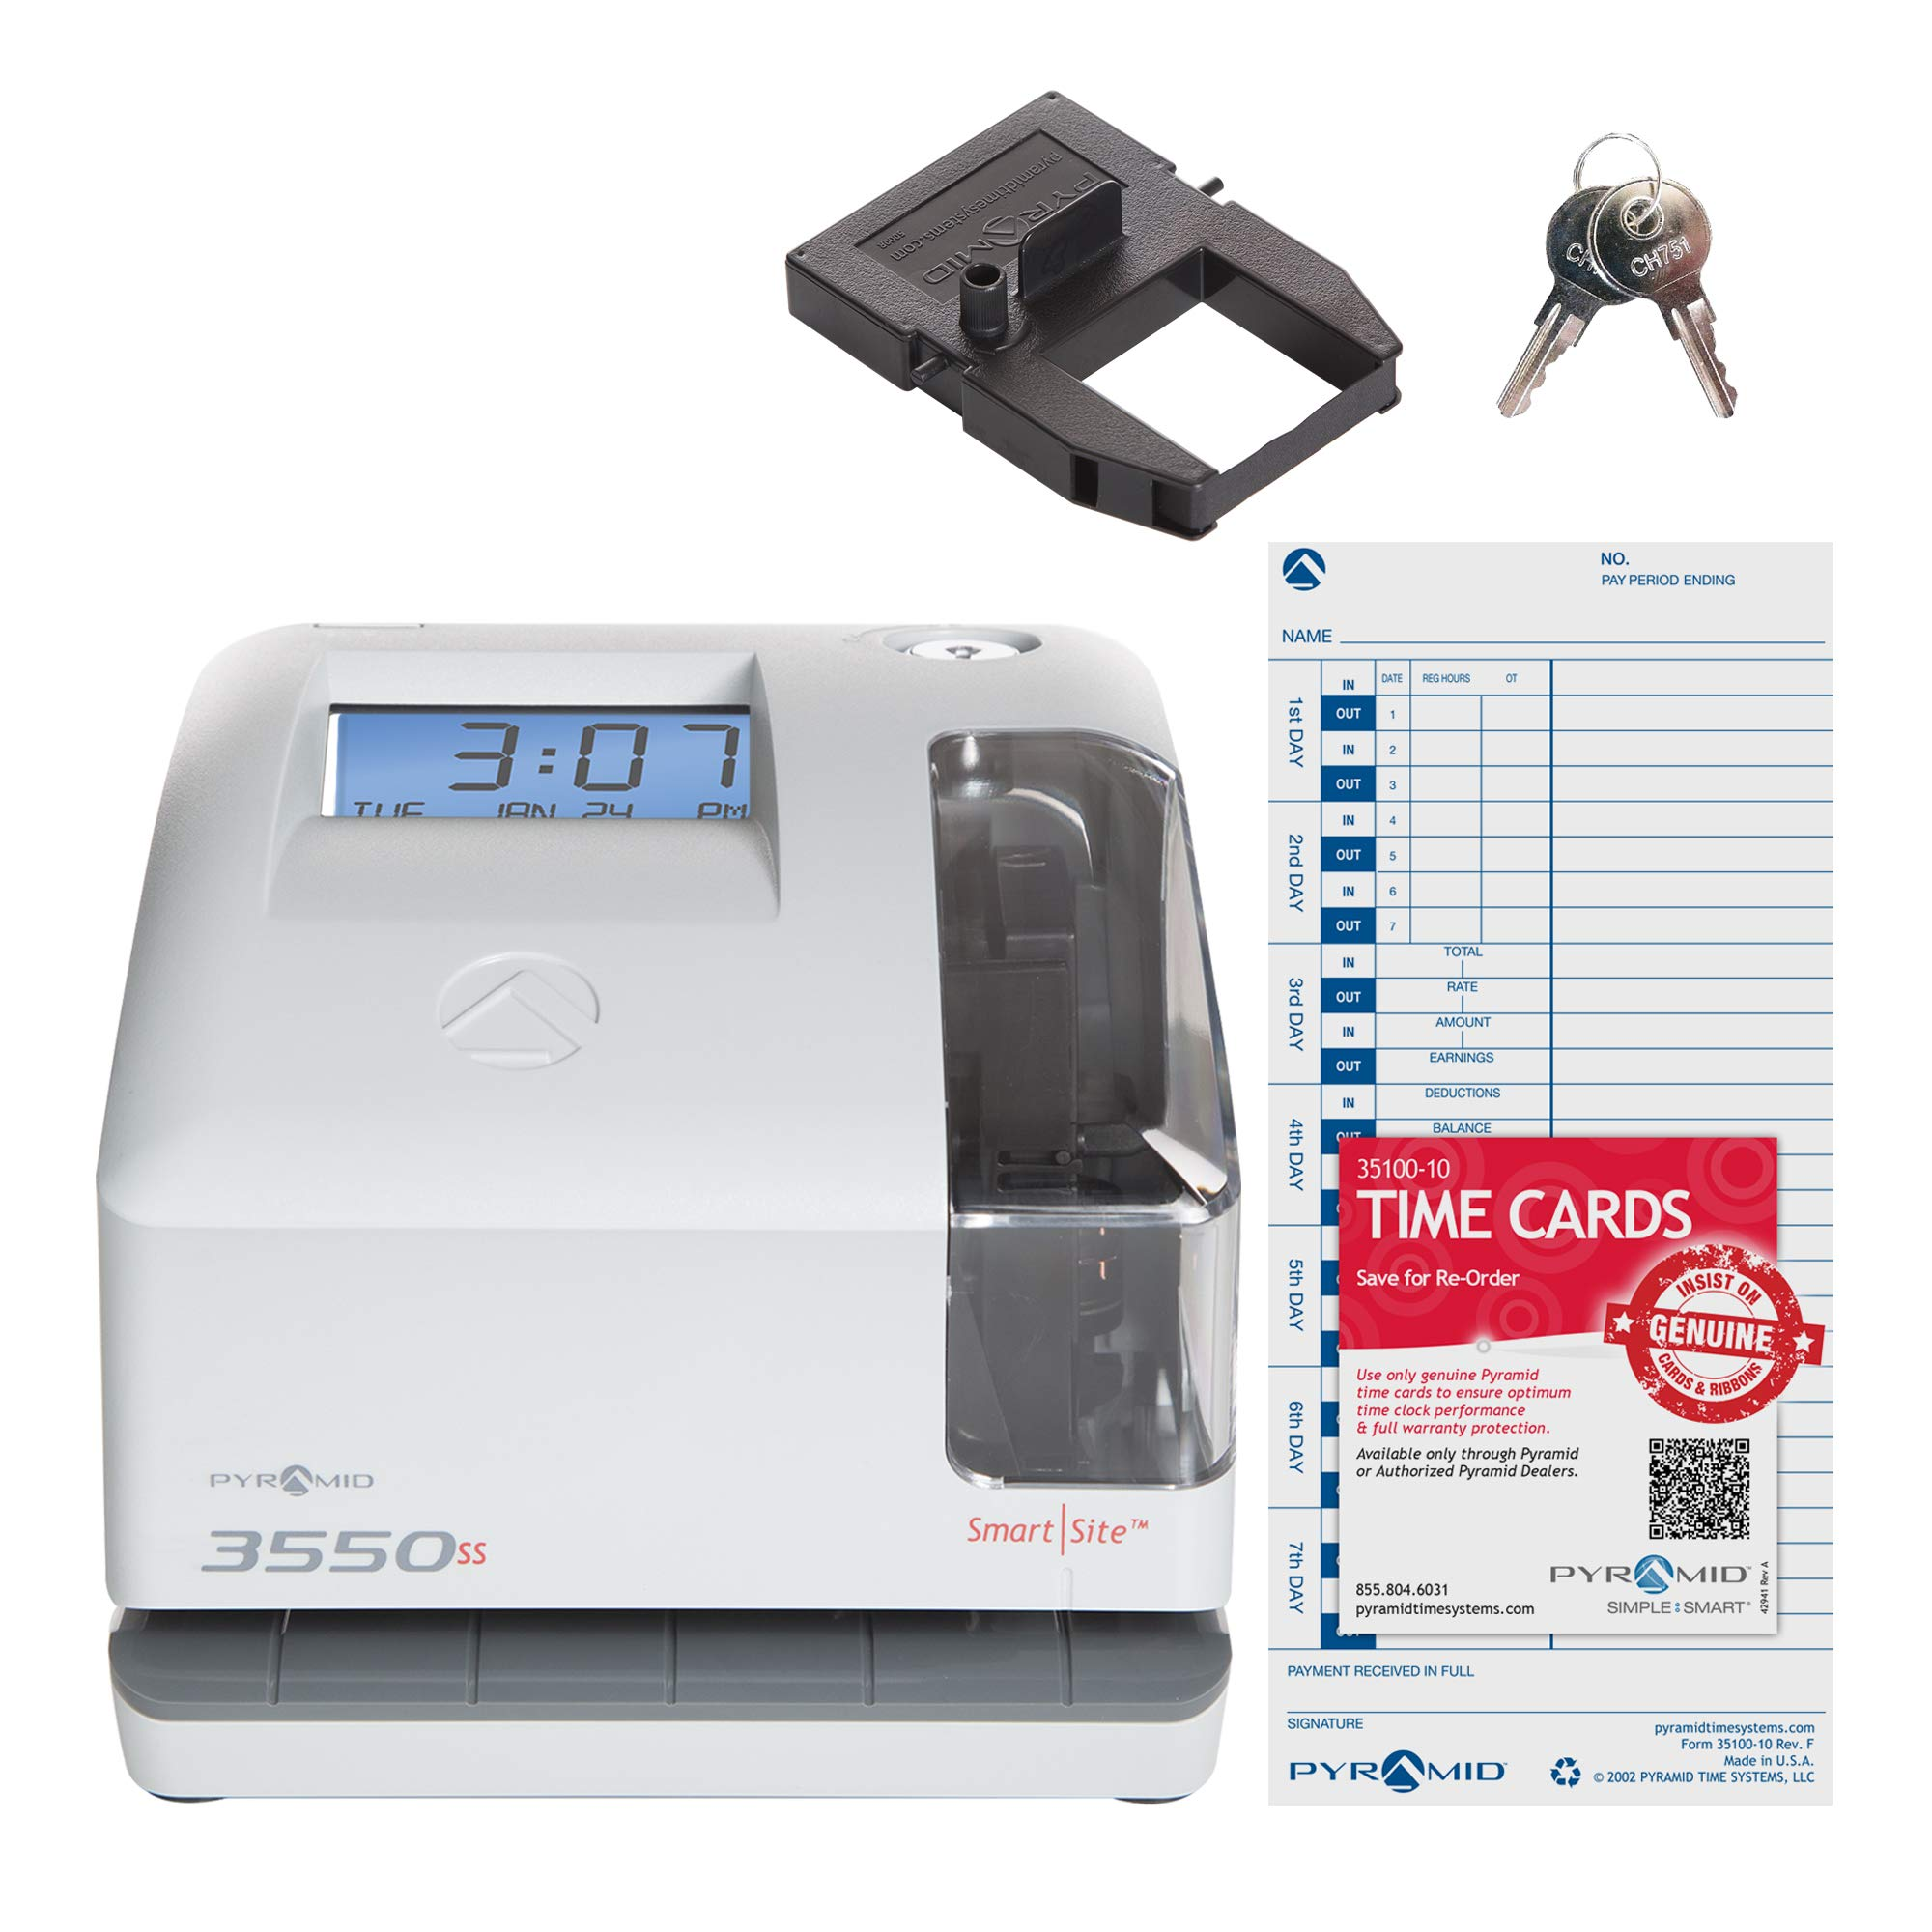 Pyramid 3550ss SmartSite Time Clock and Document Stamp - Made in USA by Pyramid Time Systems